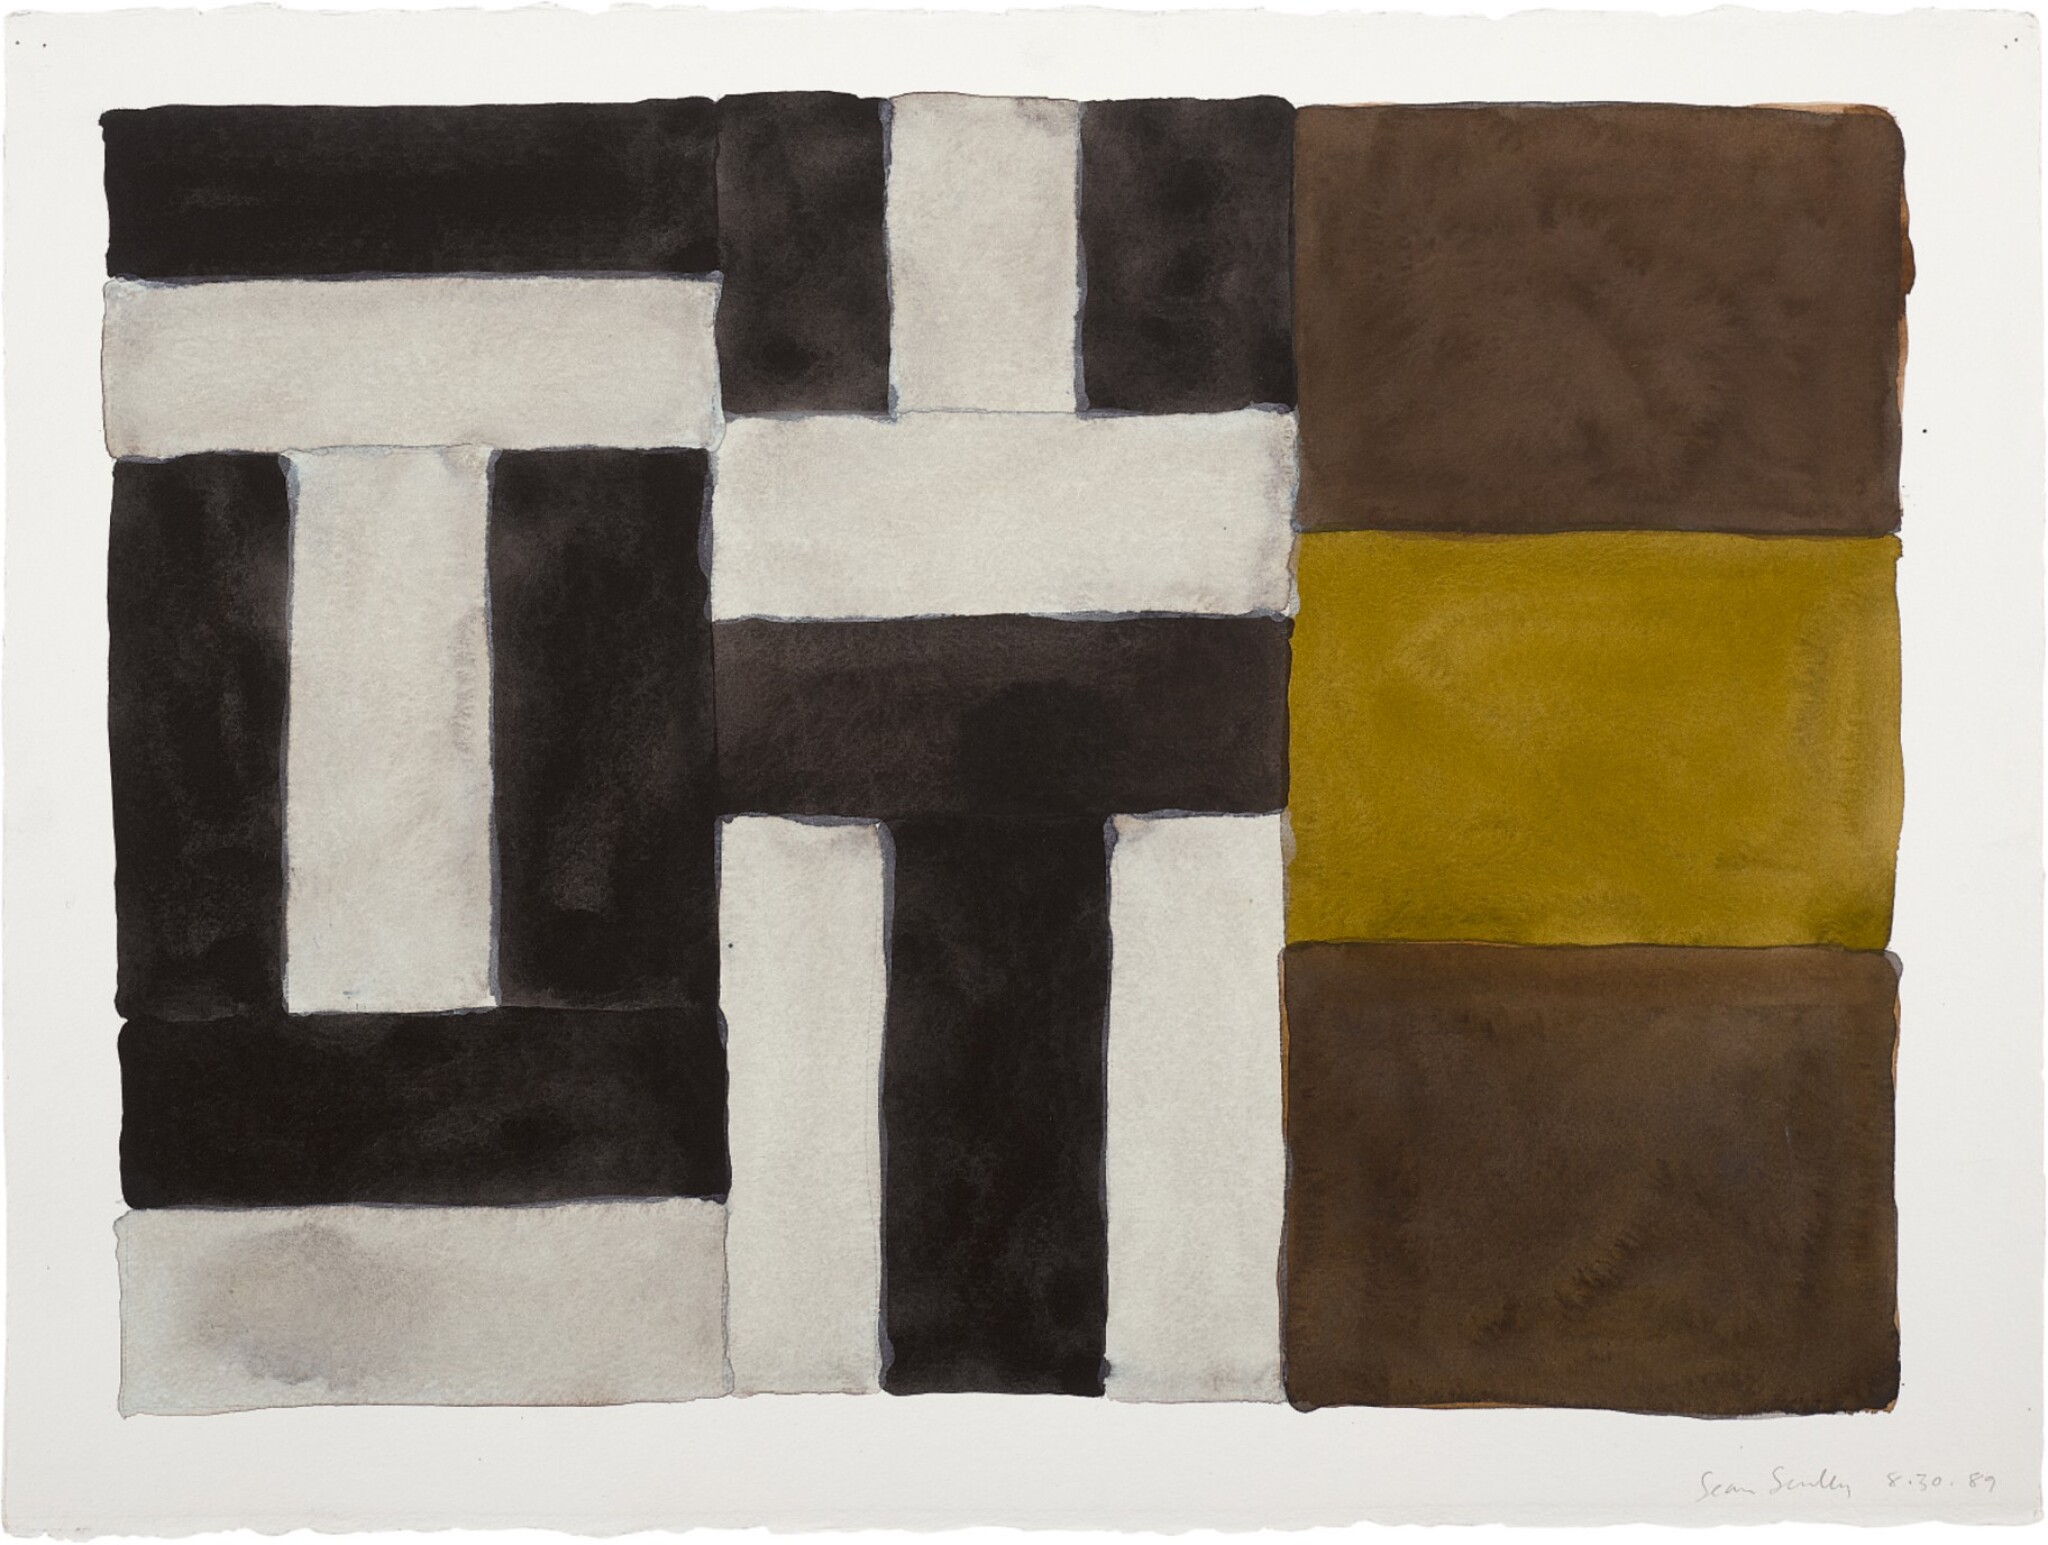 View 1 of Lot 216. SEAN SCULLY | 8.30.89.